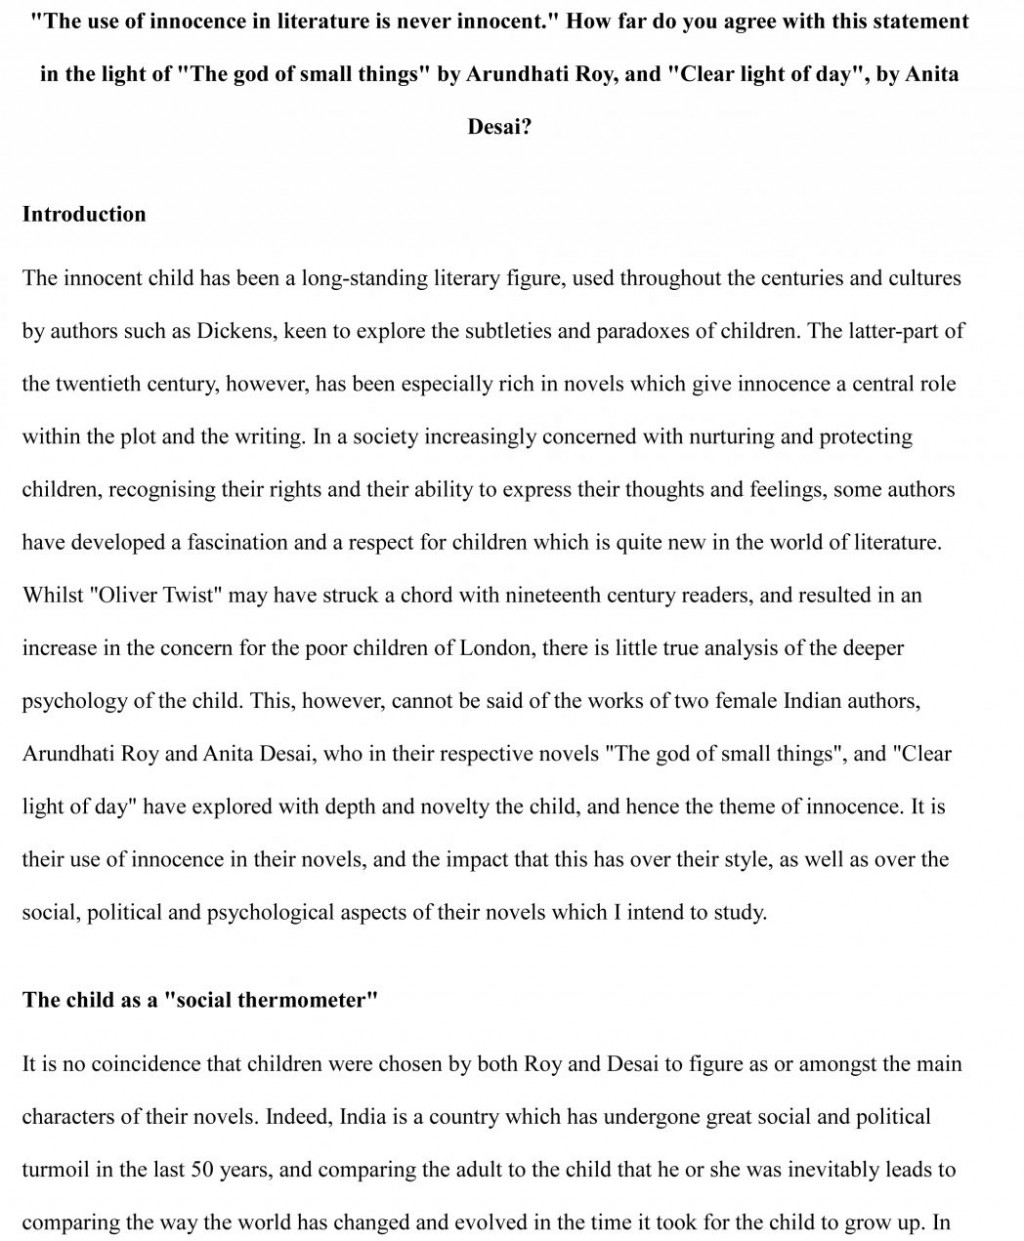 007 Essay Example Social Commentary Finance Local Government Ib Alevel Course Personal Examples Data Evaluative Reflective Analysis Critical Meta Dreaded Art The Great Gatsby Large